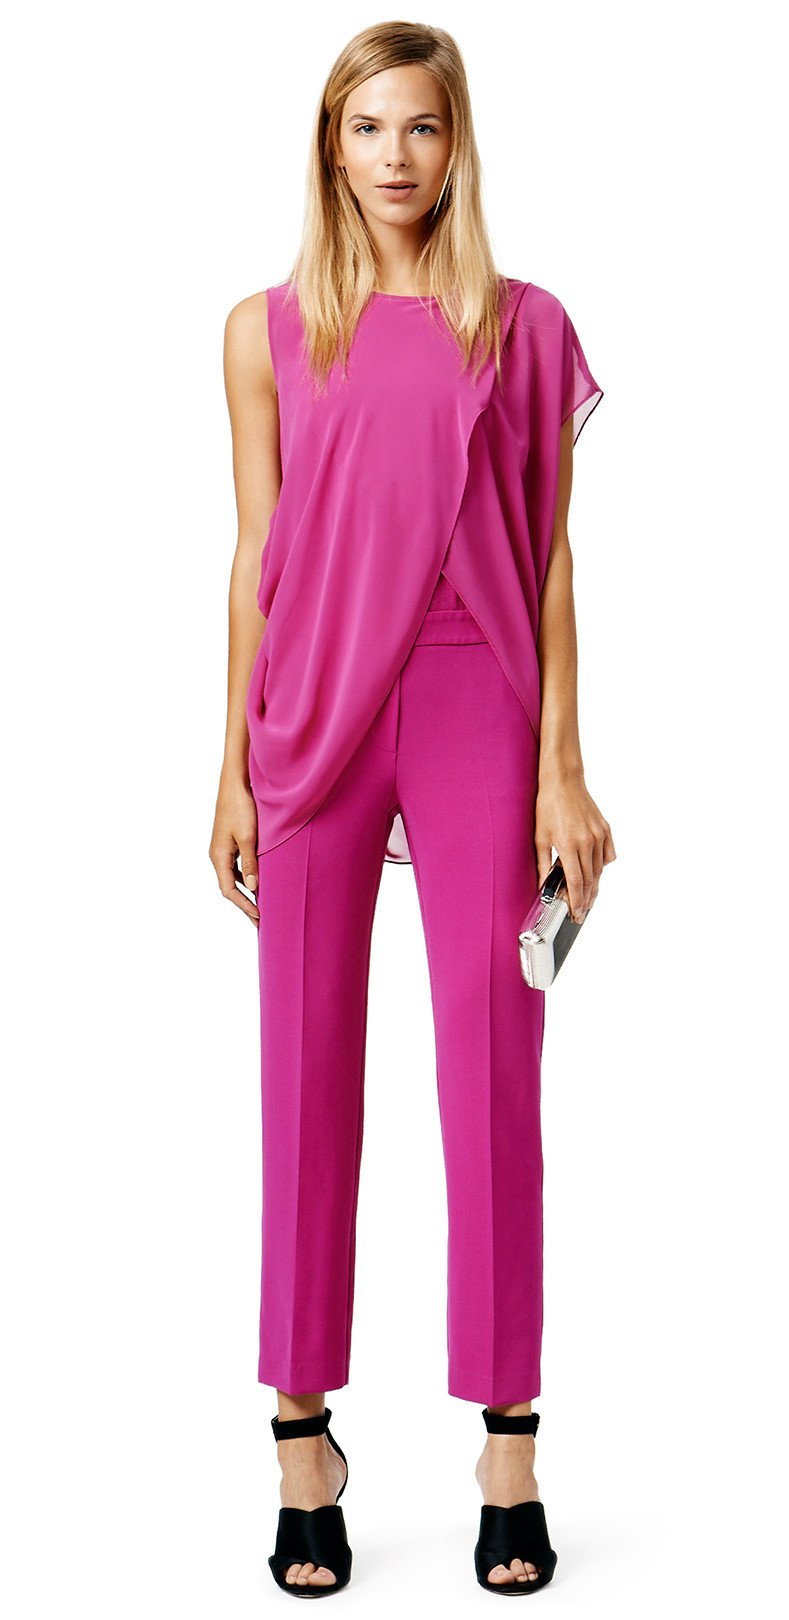 Blumarine Amber Waves Jumpsuit, party pretty in pink on Valentine's Day